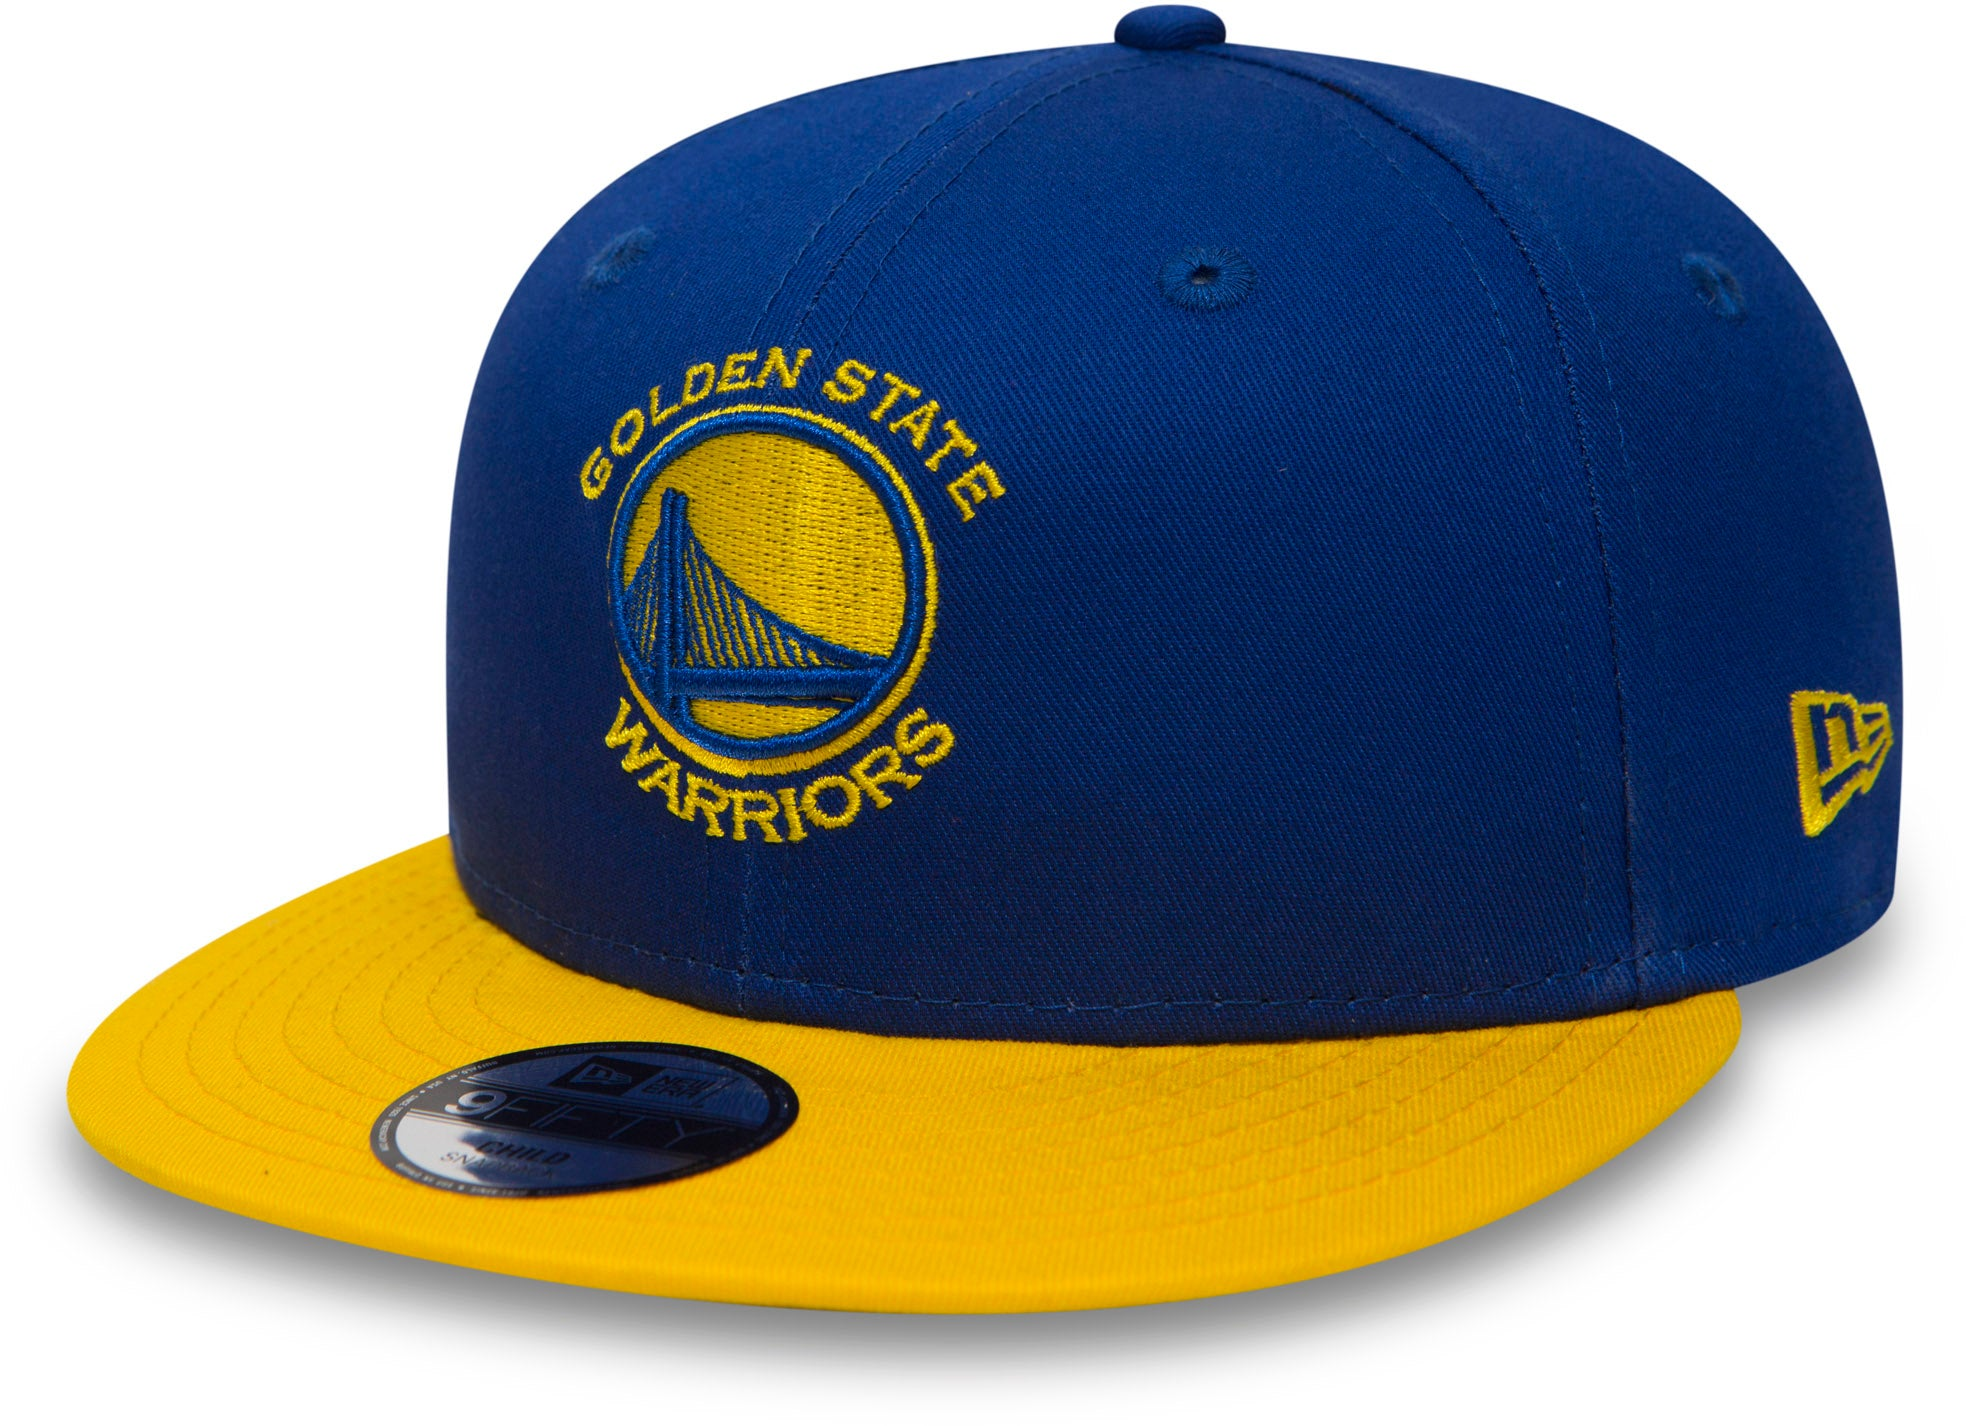 0c3ae7d5cb511 Golden State Warriors New Era 950 Kids Essential Snapback Cap (Ages 5 - 10  years